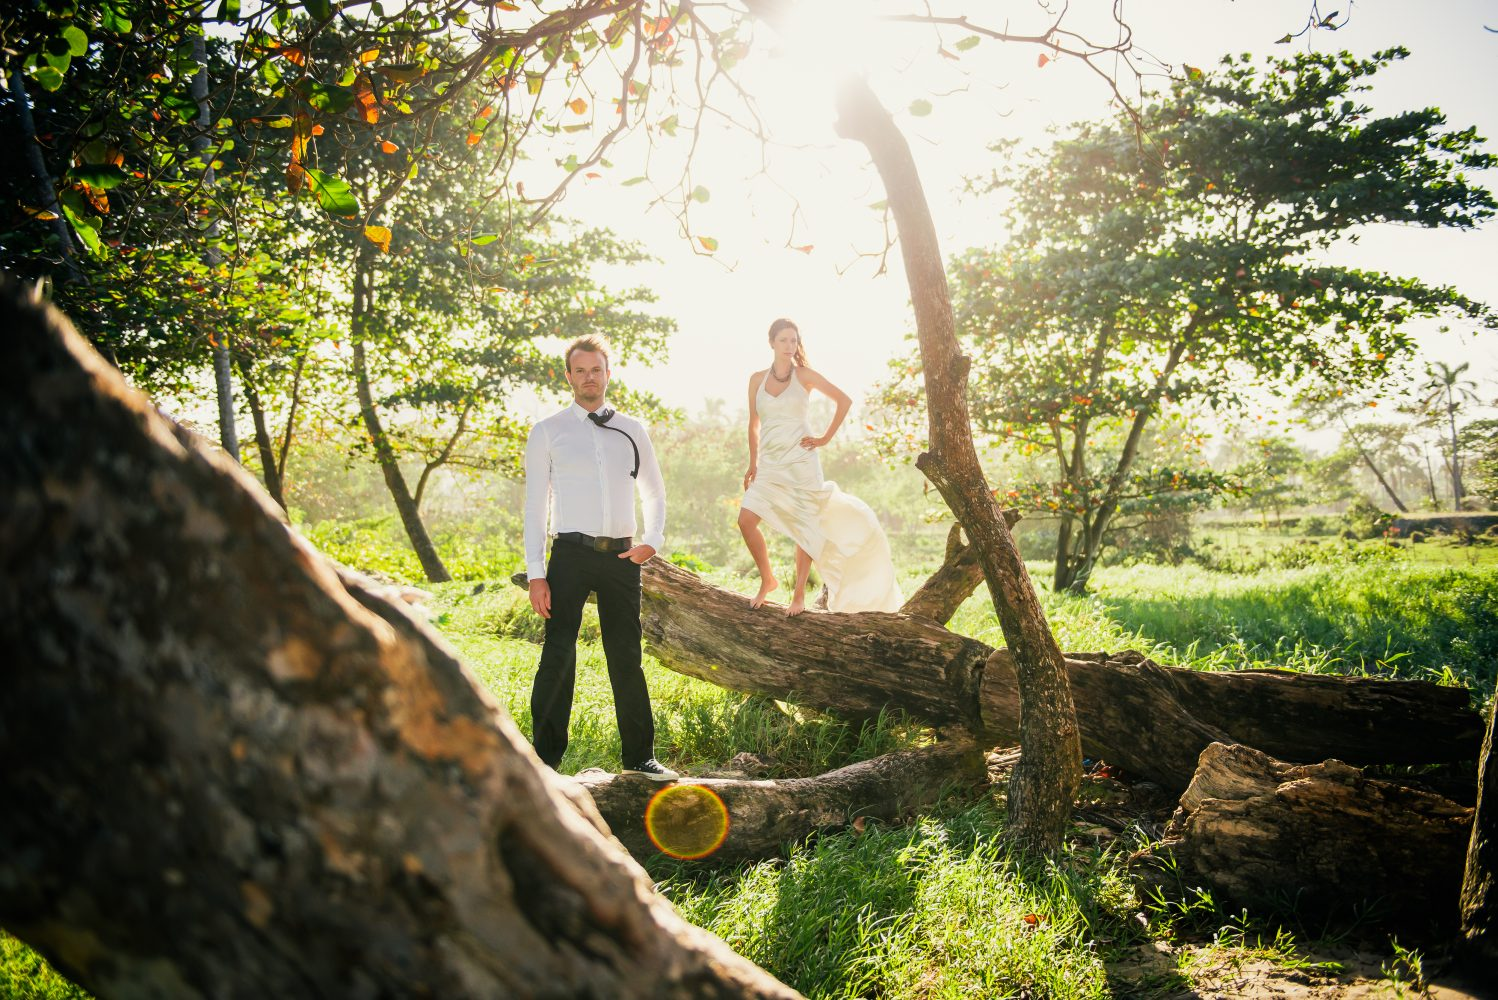 A sunfilled day after session in the Dominican Republic with the Bride and Groom | 3Haus Photographics